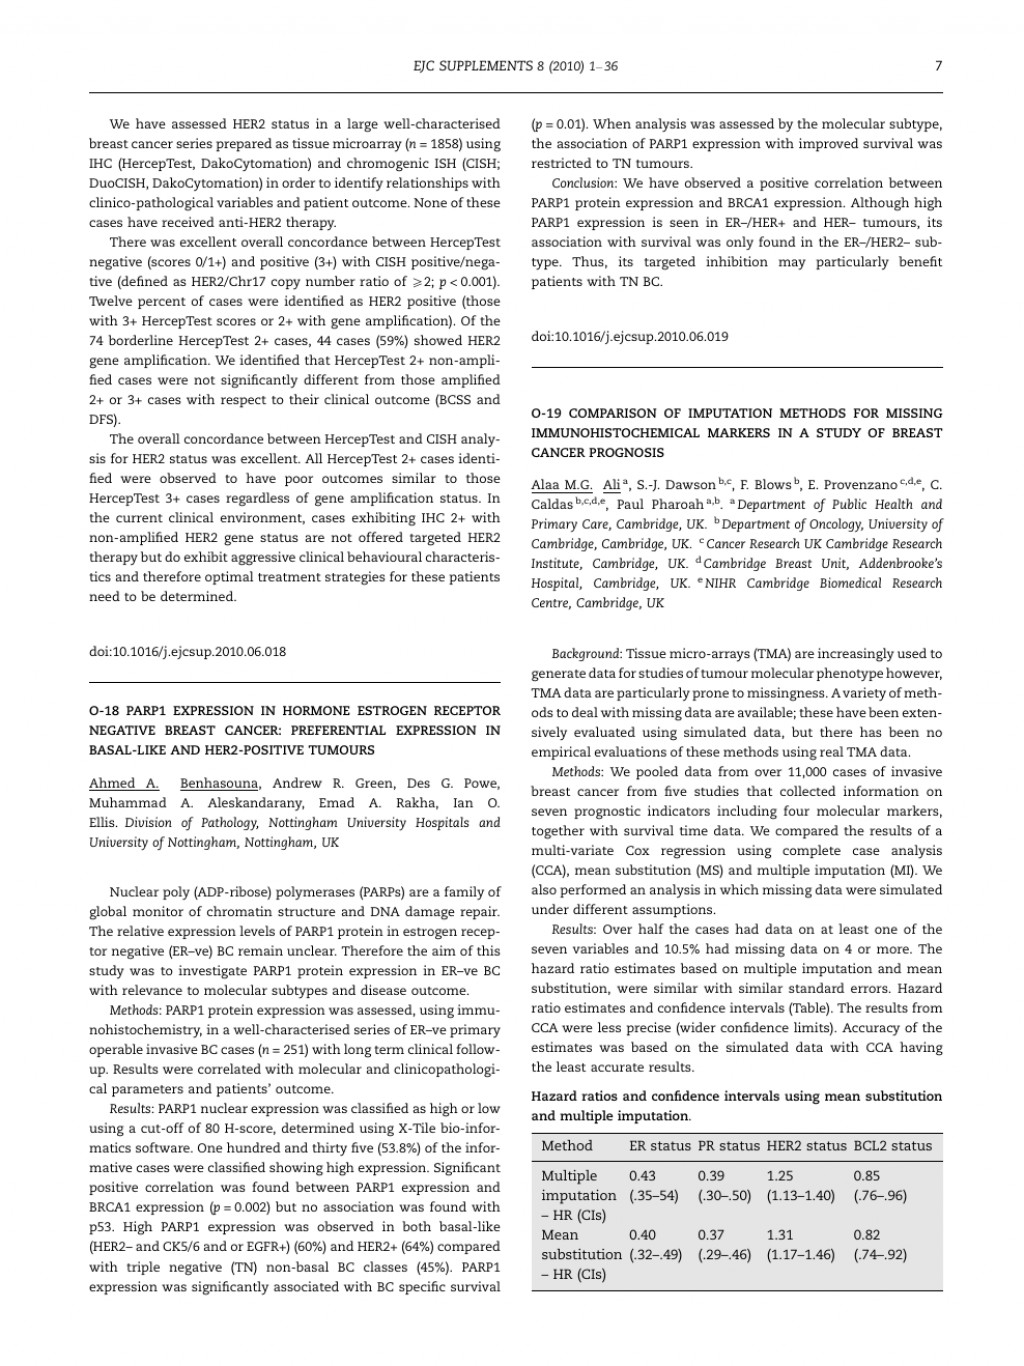 008 Cancer Researchs Pdf Fascinating Research Papers Lung Paper Colon Skin Large